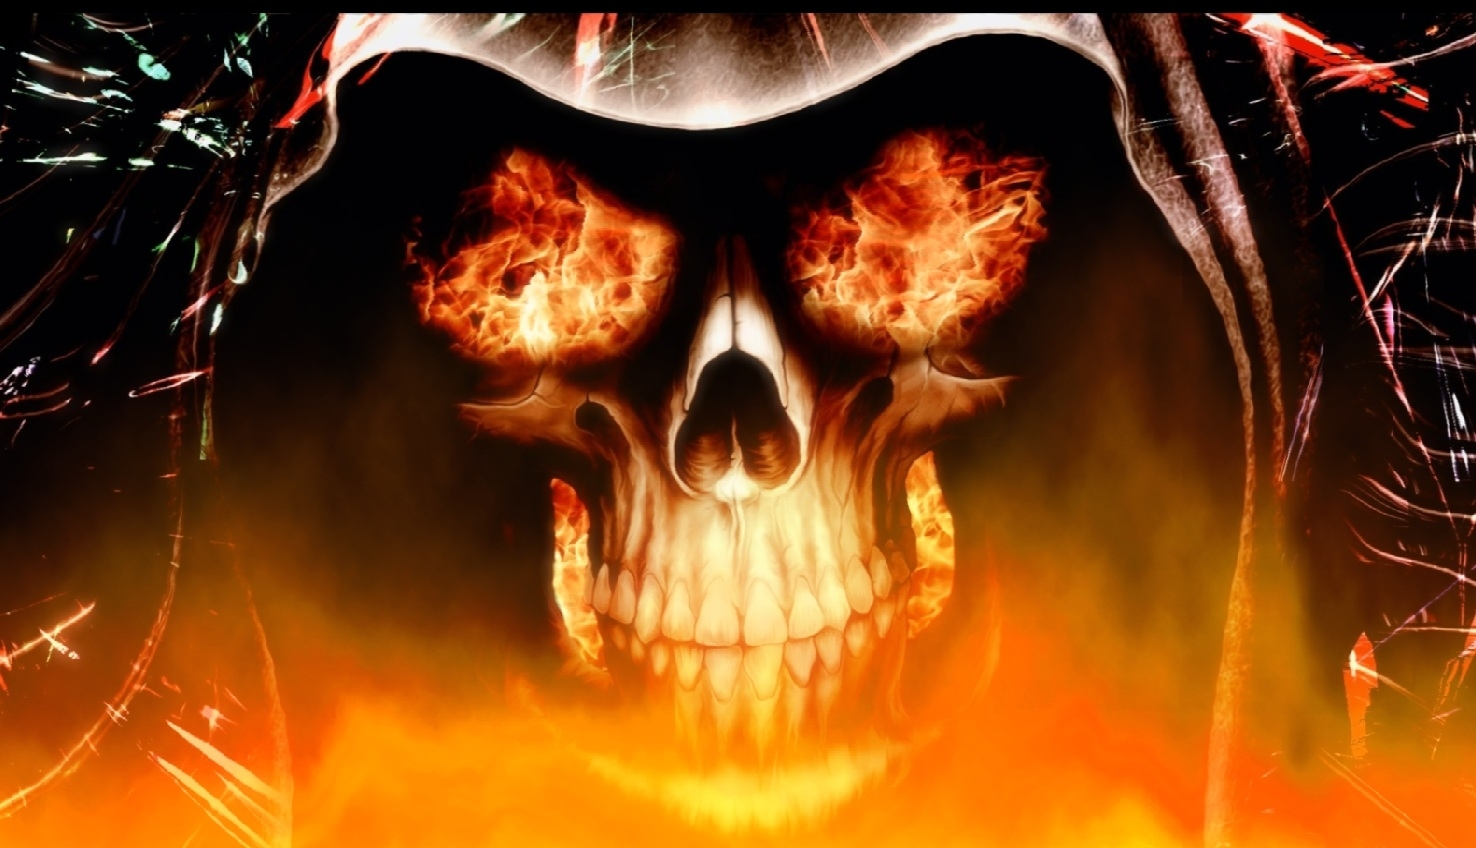 download fire skull animated wallpaper | desktopanimated